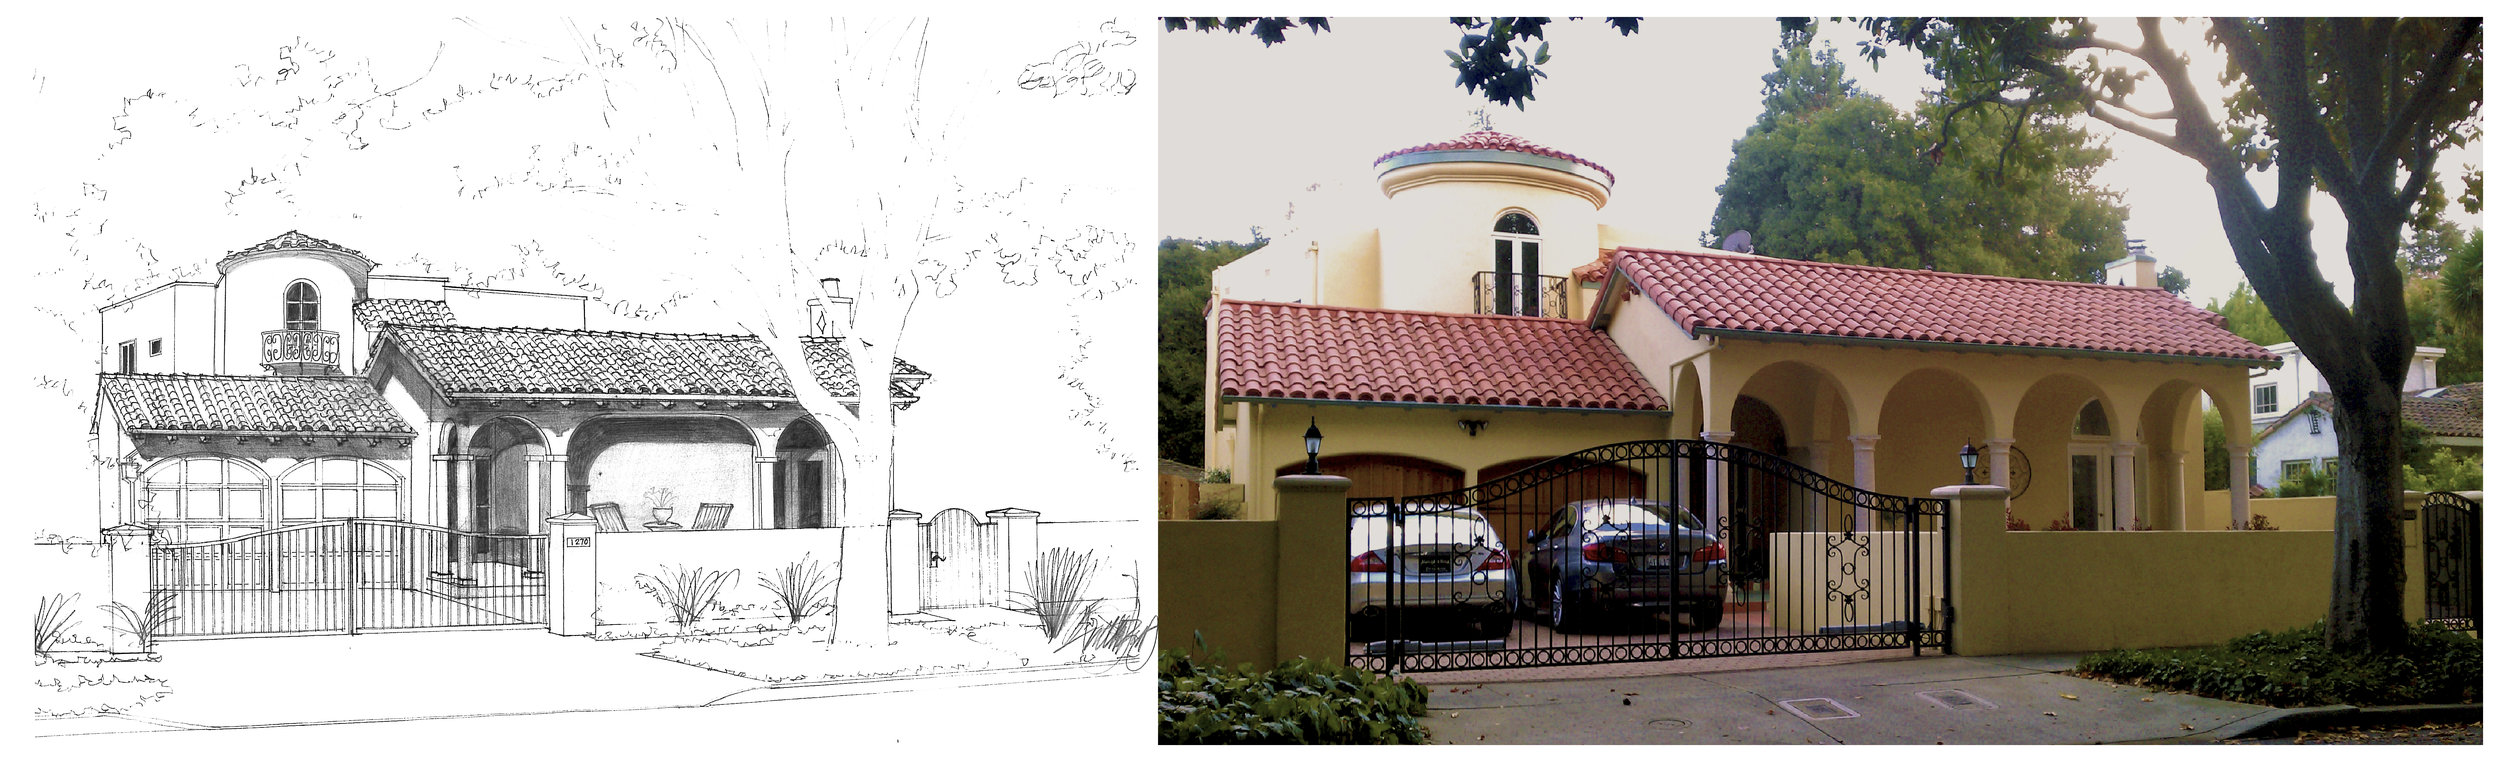 We can provide hand-sketching or simple line drawings to visualize a design concept.